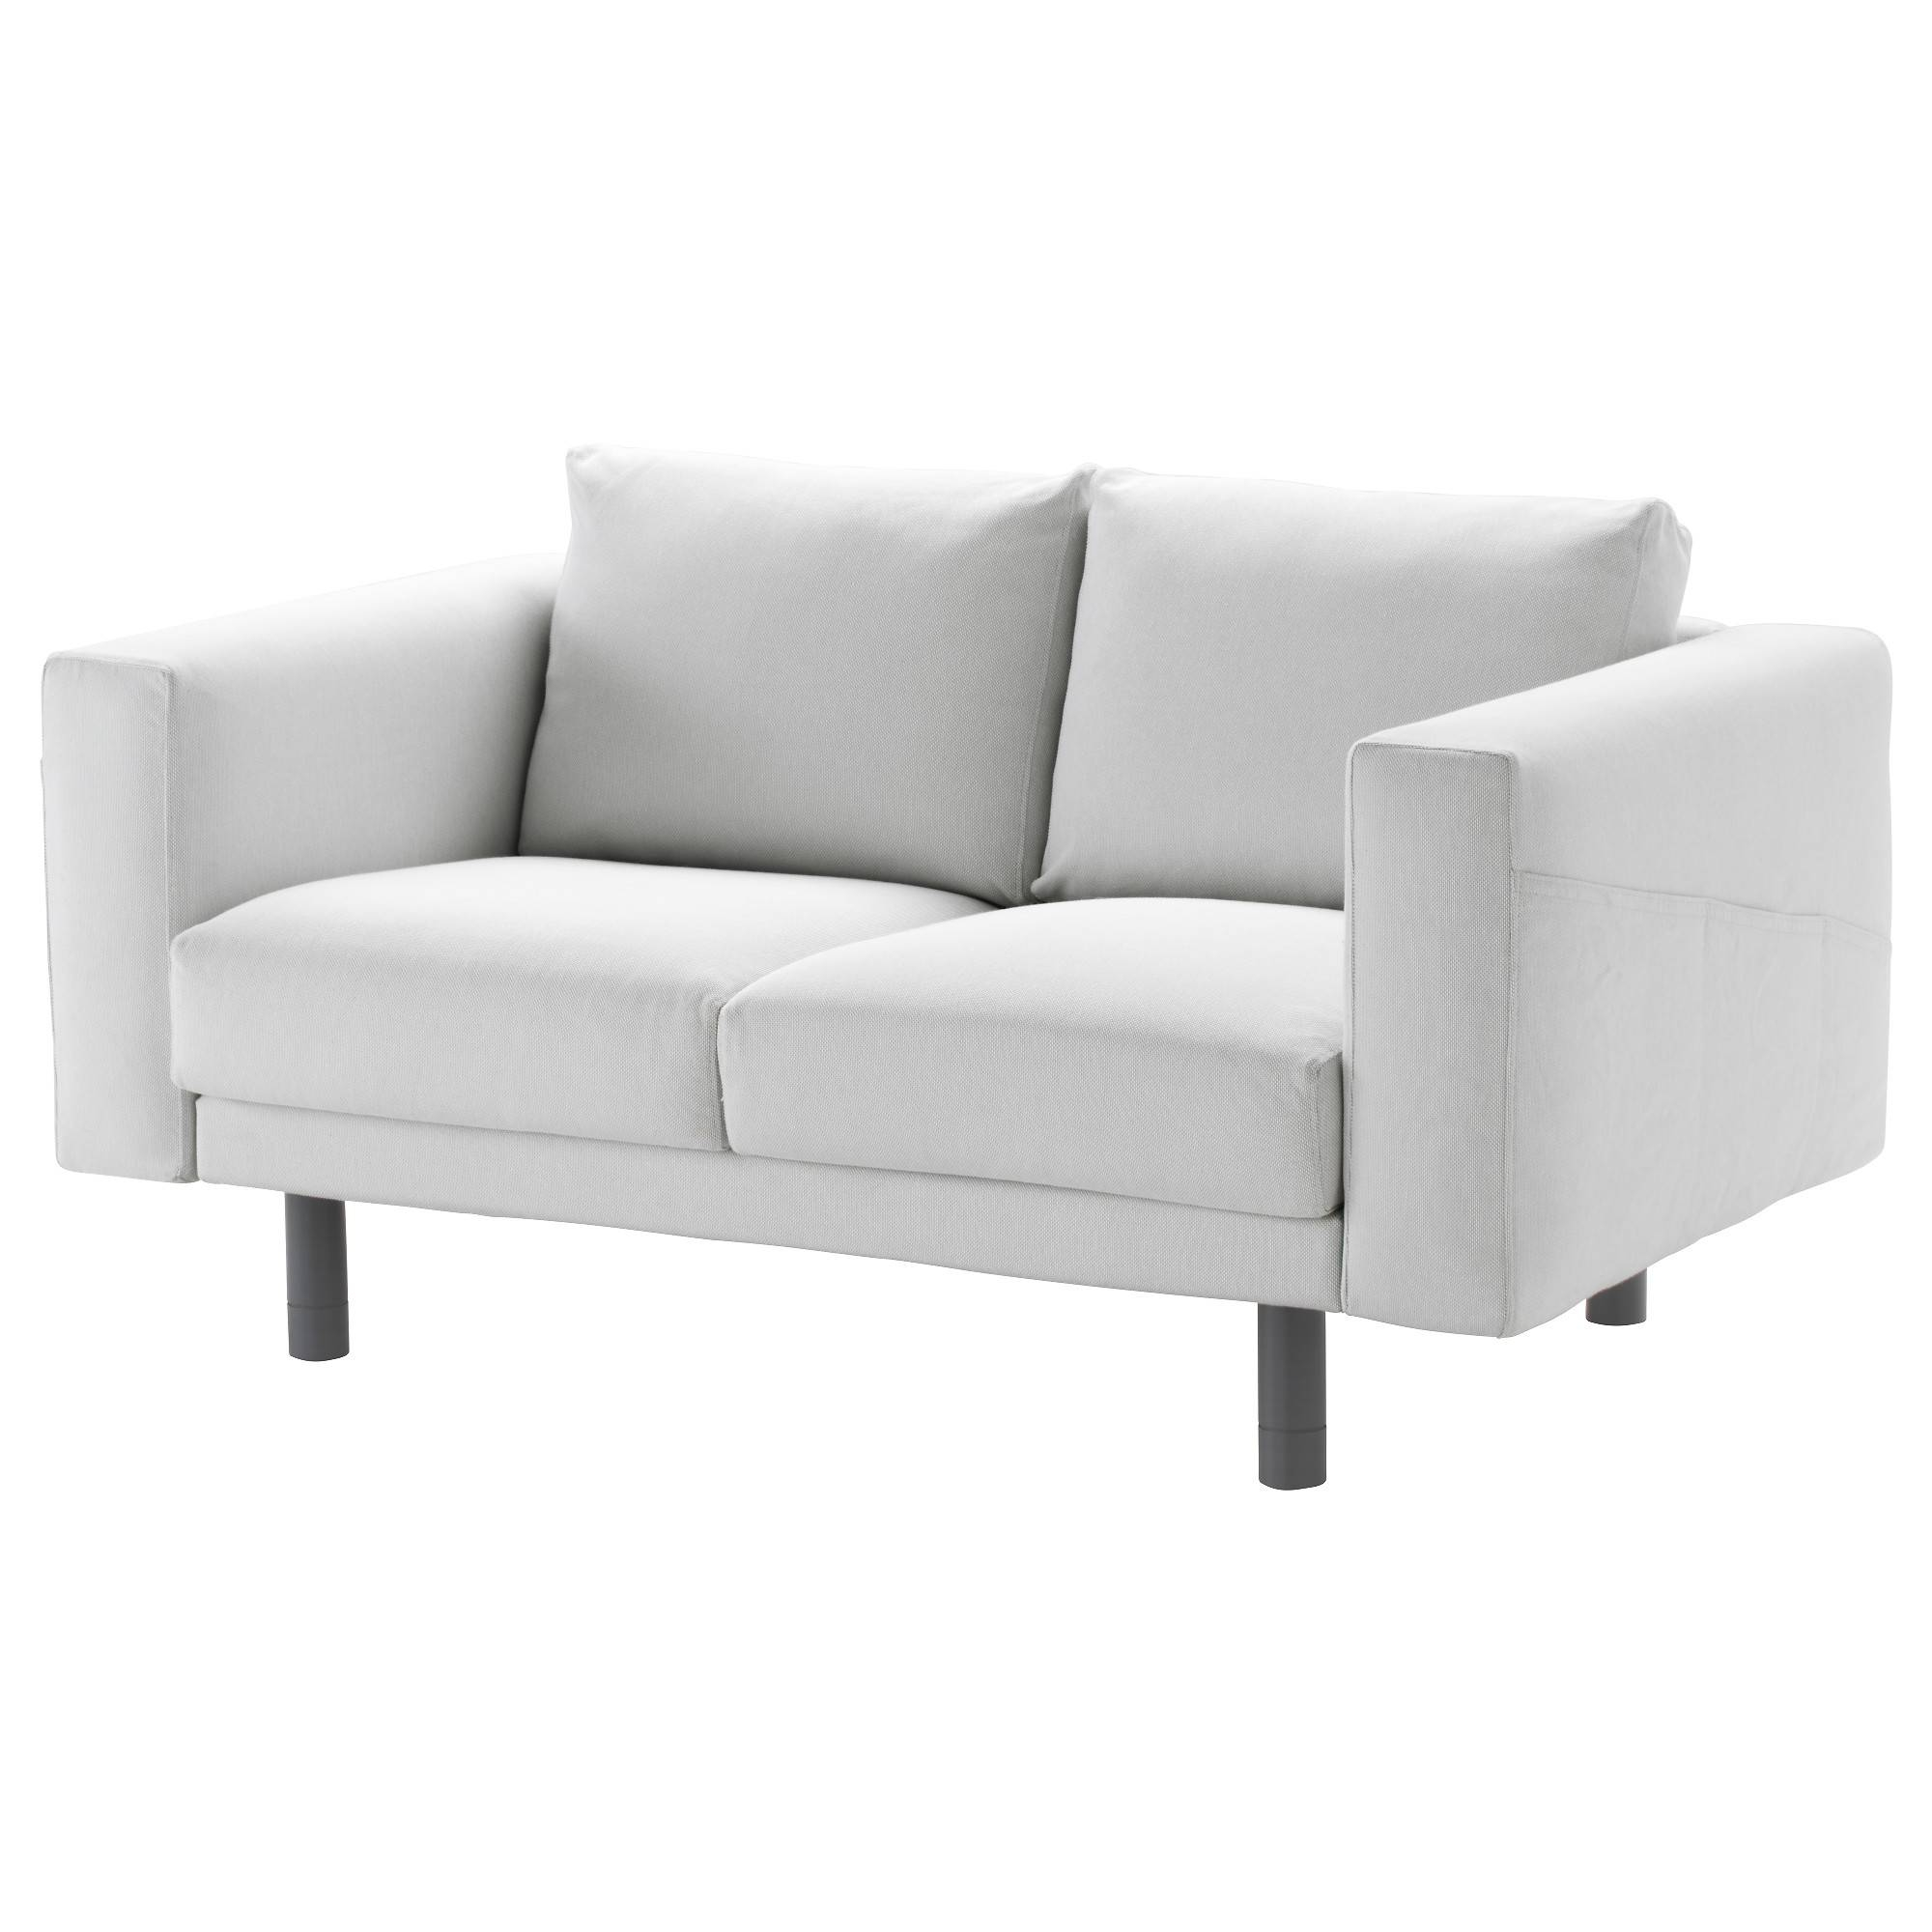 Norsborg Two-Seat Sofa Finnsta White/grey - Ikea with regard to Ikea Two Seater Sofas (Image 20 of 30)